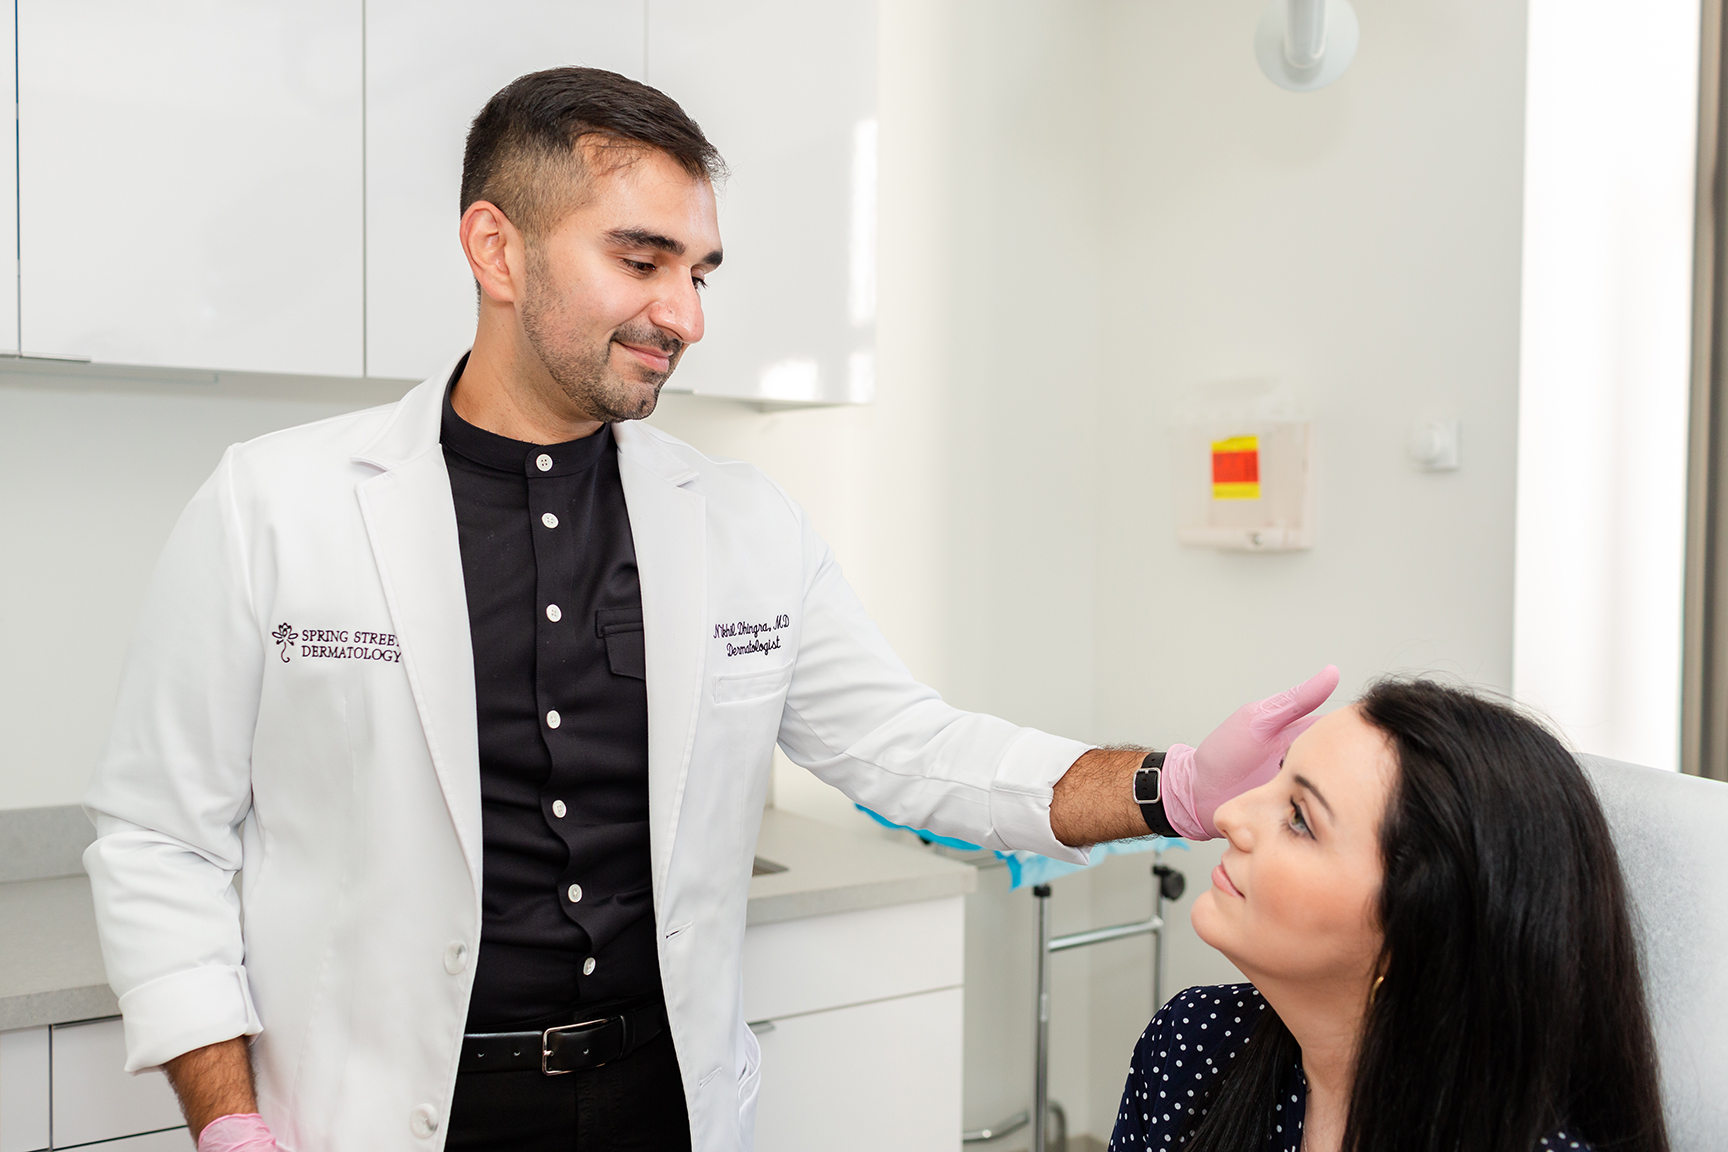 Image showing Dr. Dhingra, board certified dermatologist checking his patient at Spring Street Dermatology's Tribeca location in New York City, NY